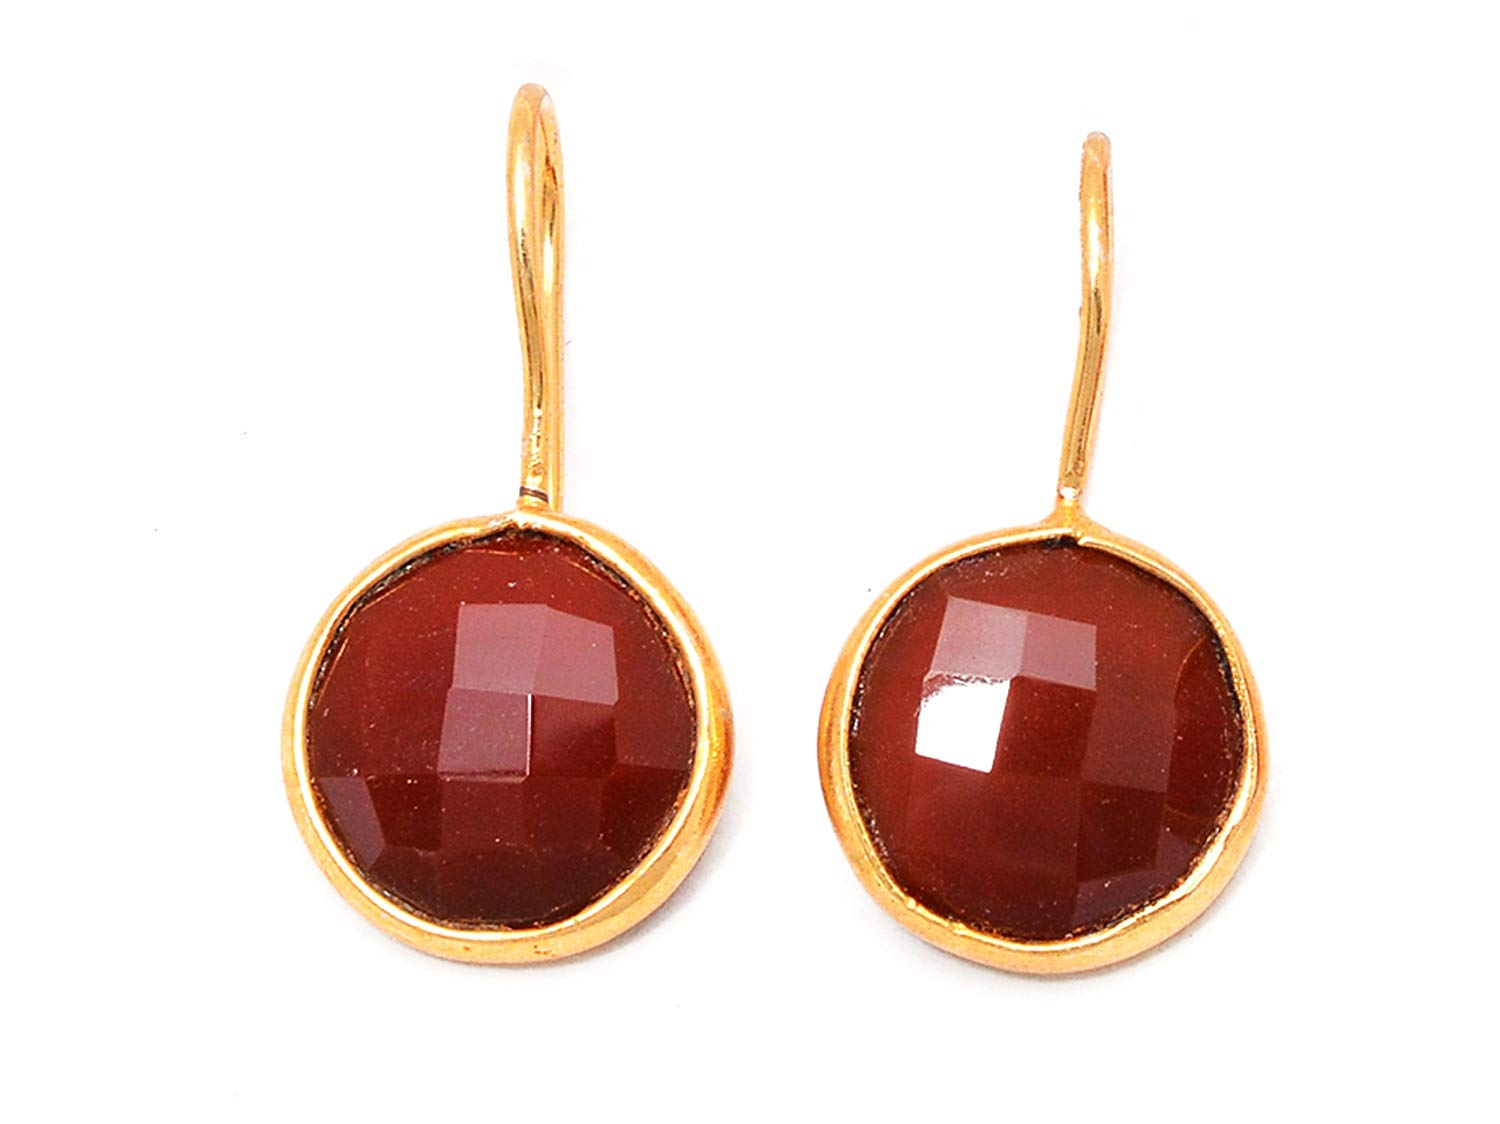 f12f224c4 Get Quotations · Elegantjewels 1 Pair Red Onyx 12mm Round 925 Sterling  Silver Gold Plated Clip Earring,Handmade